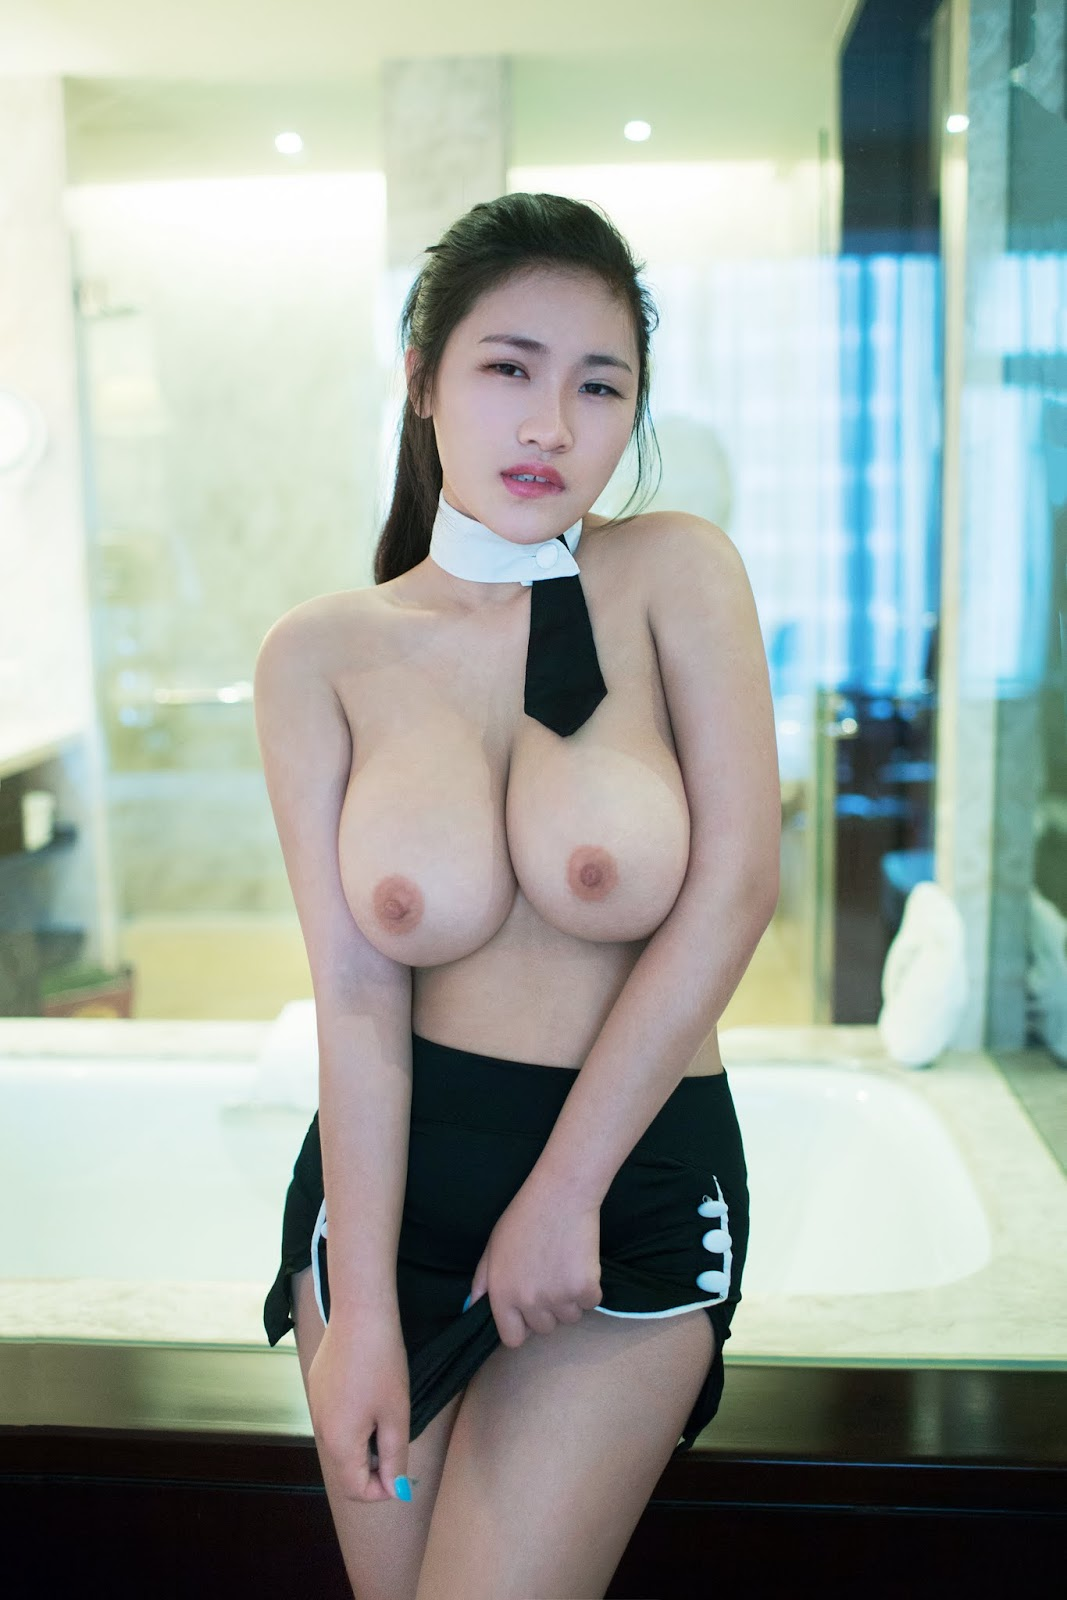 %25C2%25BC %252B 14 - Hot Photo TUIGIRL NO.57 Nude